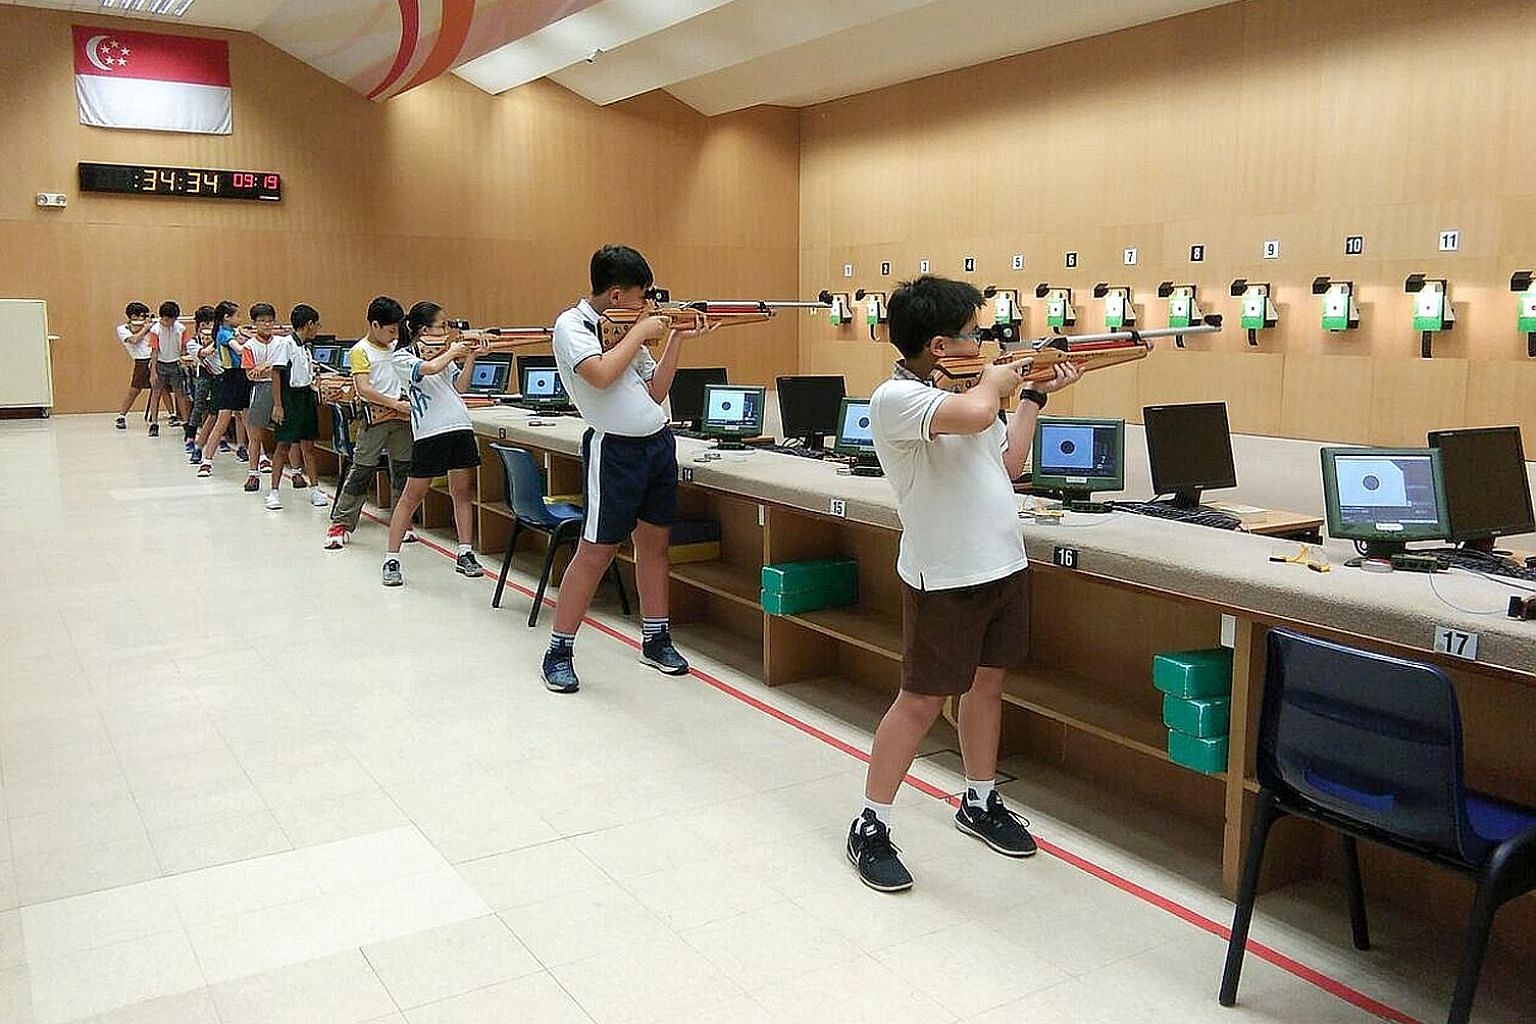 Aspiring shooters from Primary 5 and 6 are part of the long-range vision of the Singapore Sports School's Learn-To-Shoot programme.